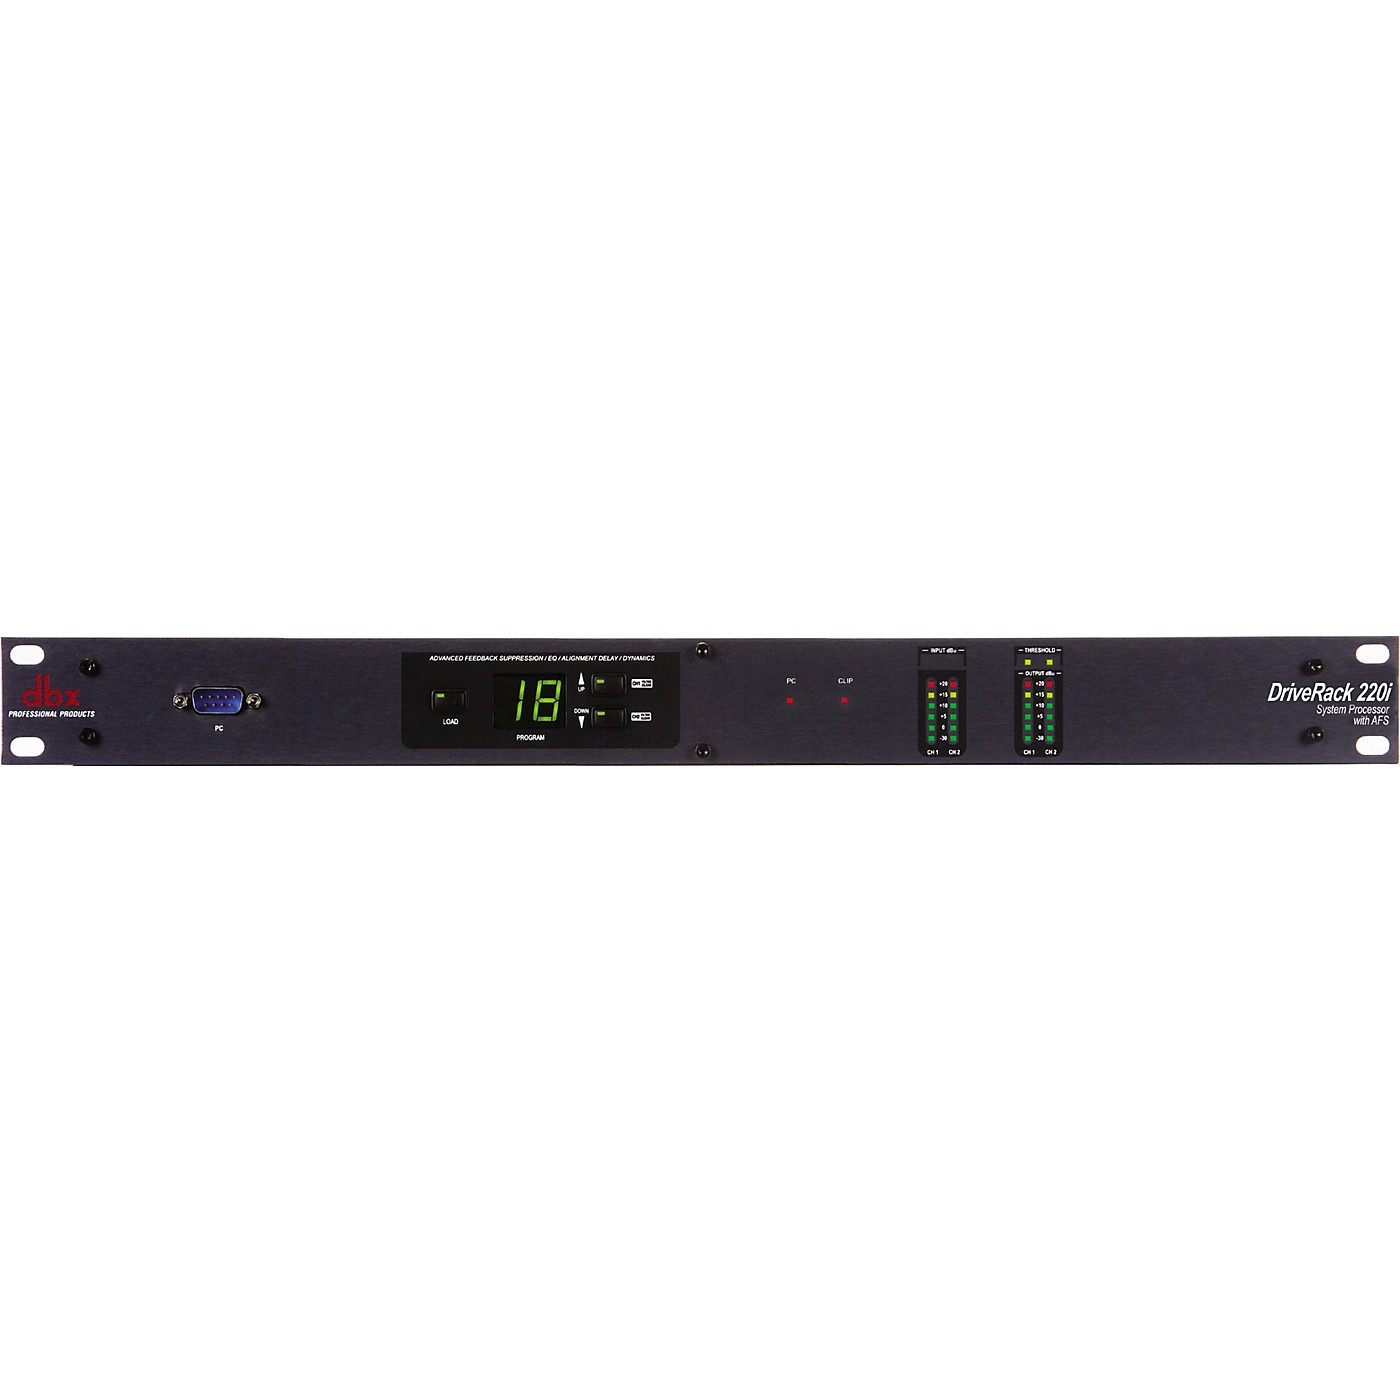 dbx 220i 2X2 Loudspeaker Management System with Display thumbnail